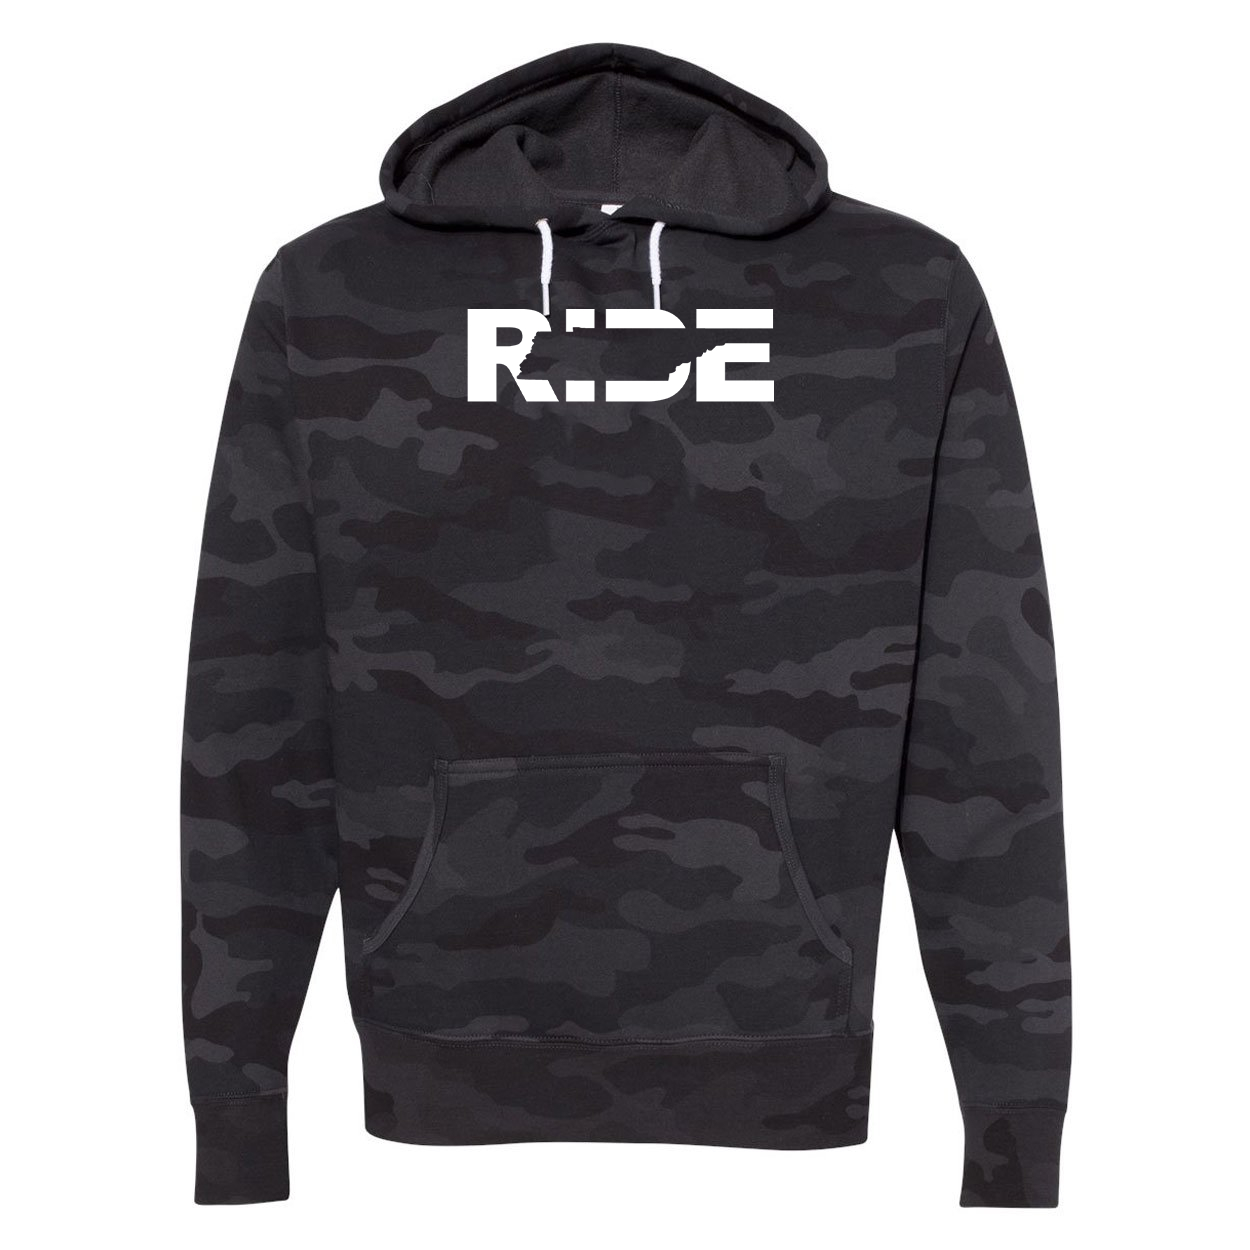 Ride Tennessee Classic Unisex Hooded Sweatshirt Black Camo (White Logo)